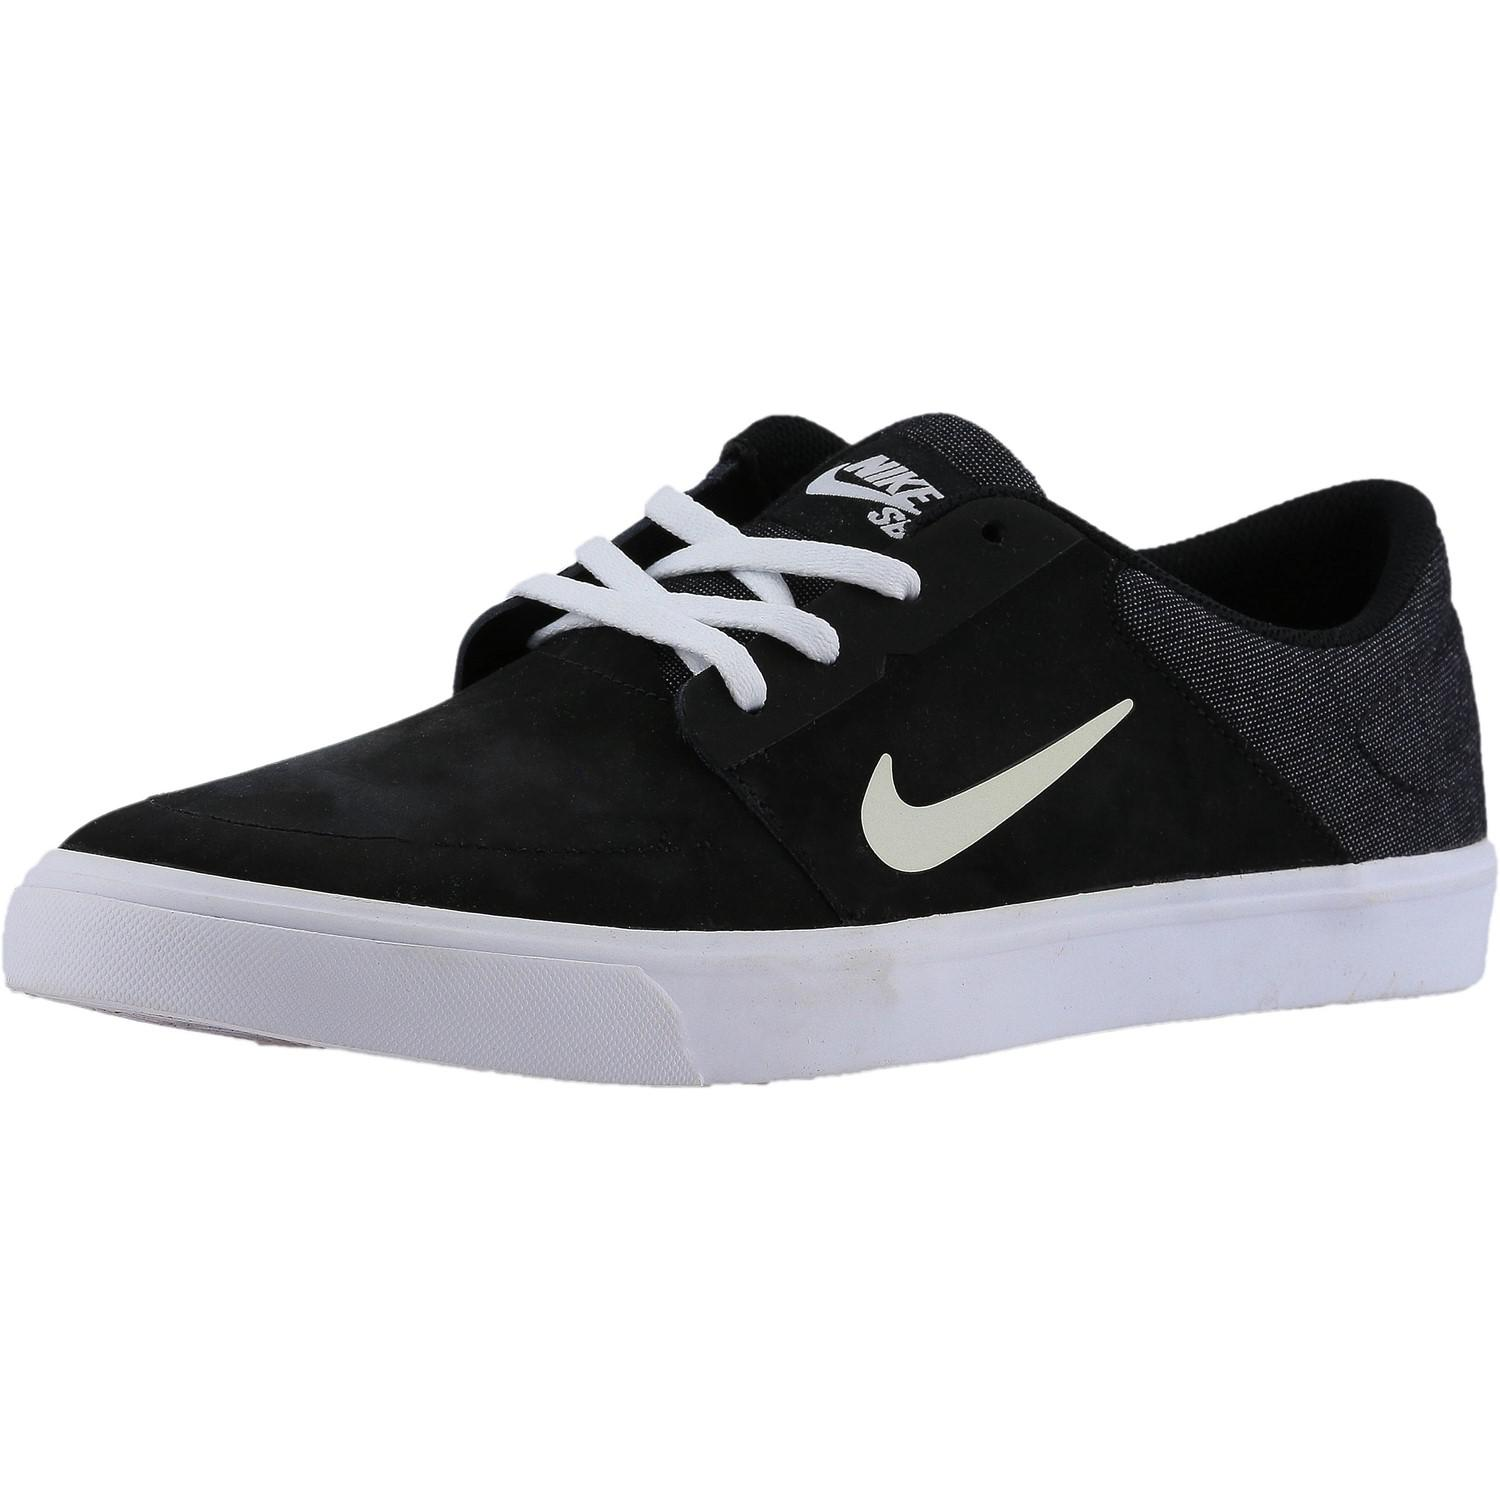 01731f0e6dee Lyst - Nike Sb Portmore Nb Black   White Ankle-high Canvas ...